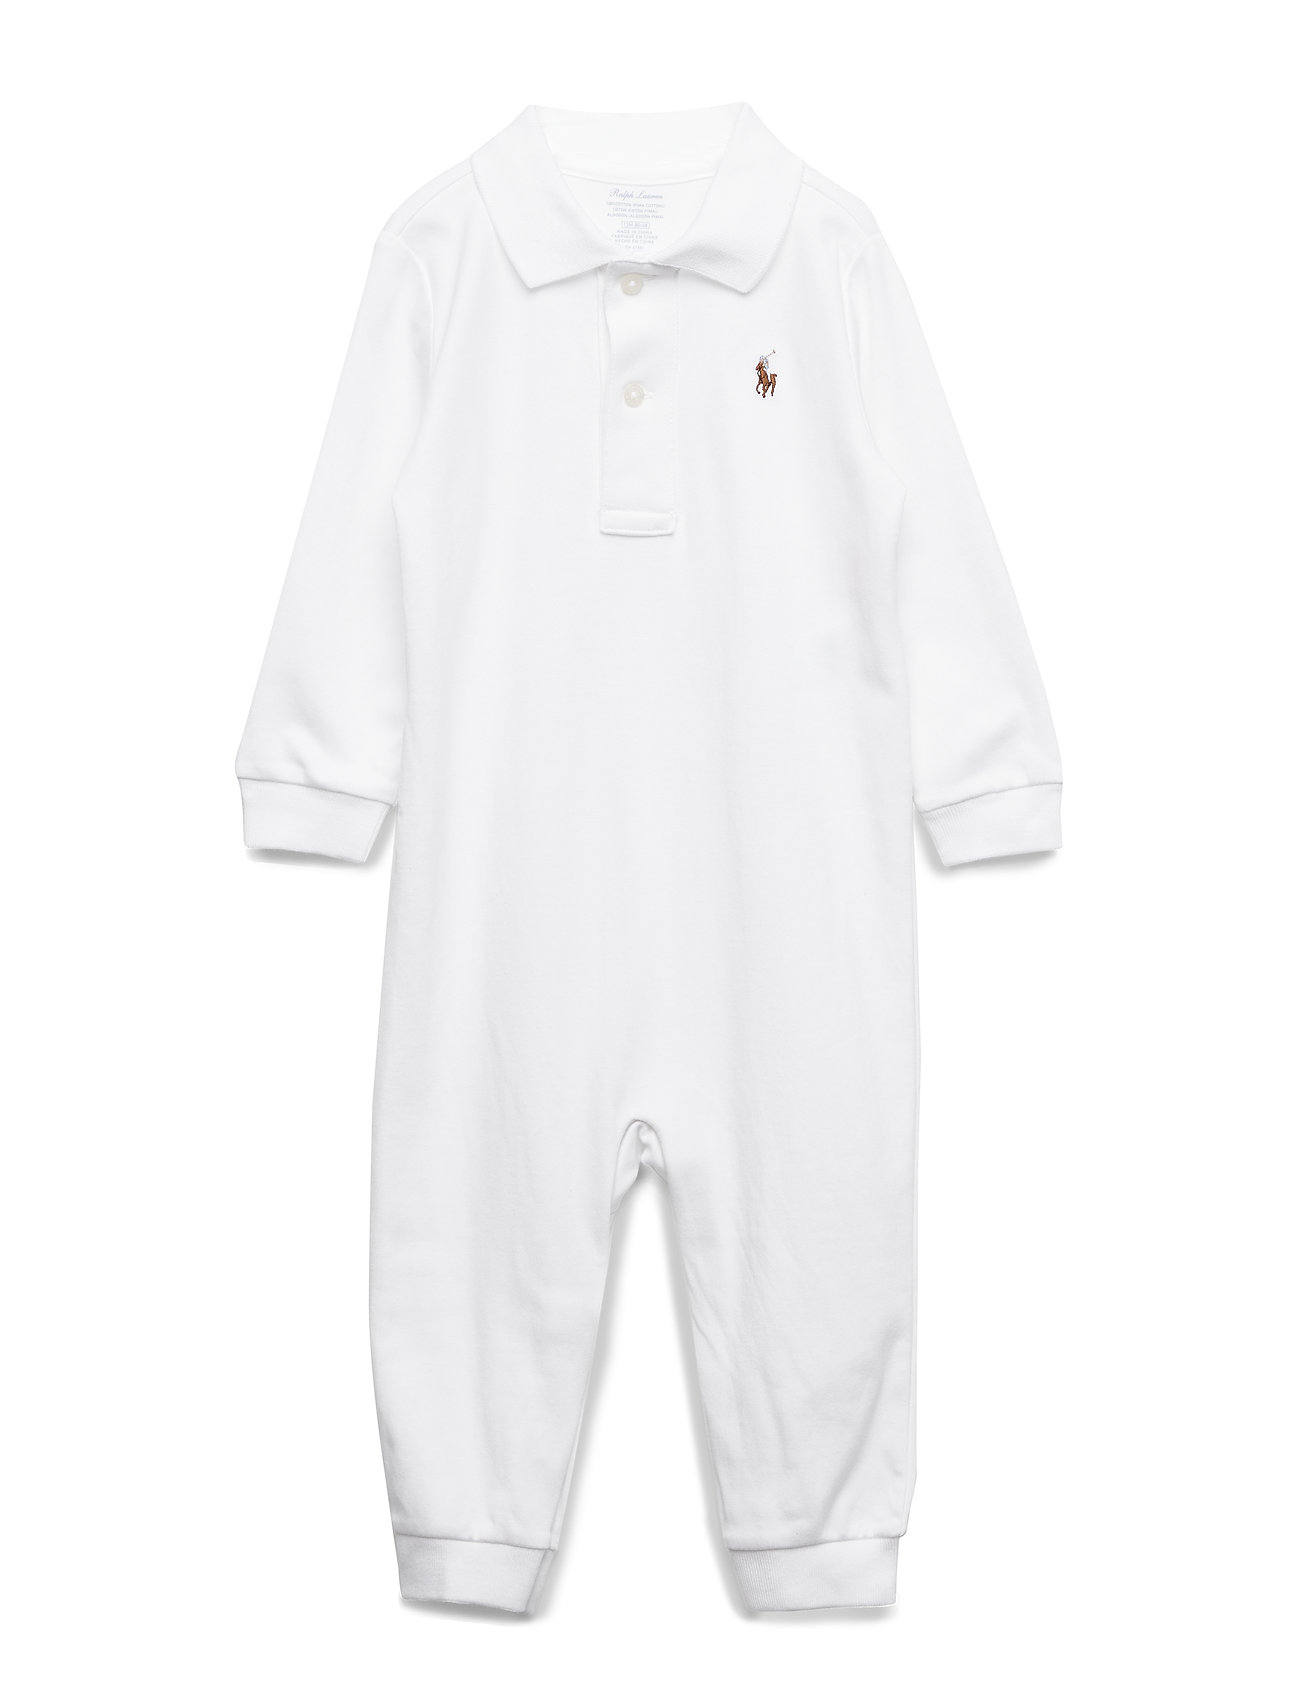 Ralph Lauren Baby POLO COVRALL-ONE PIECE-COVERALL - WHITE